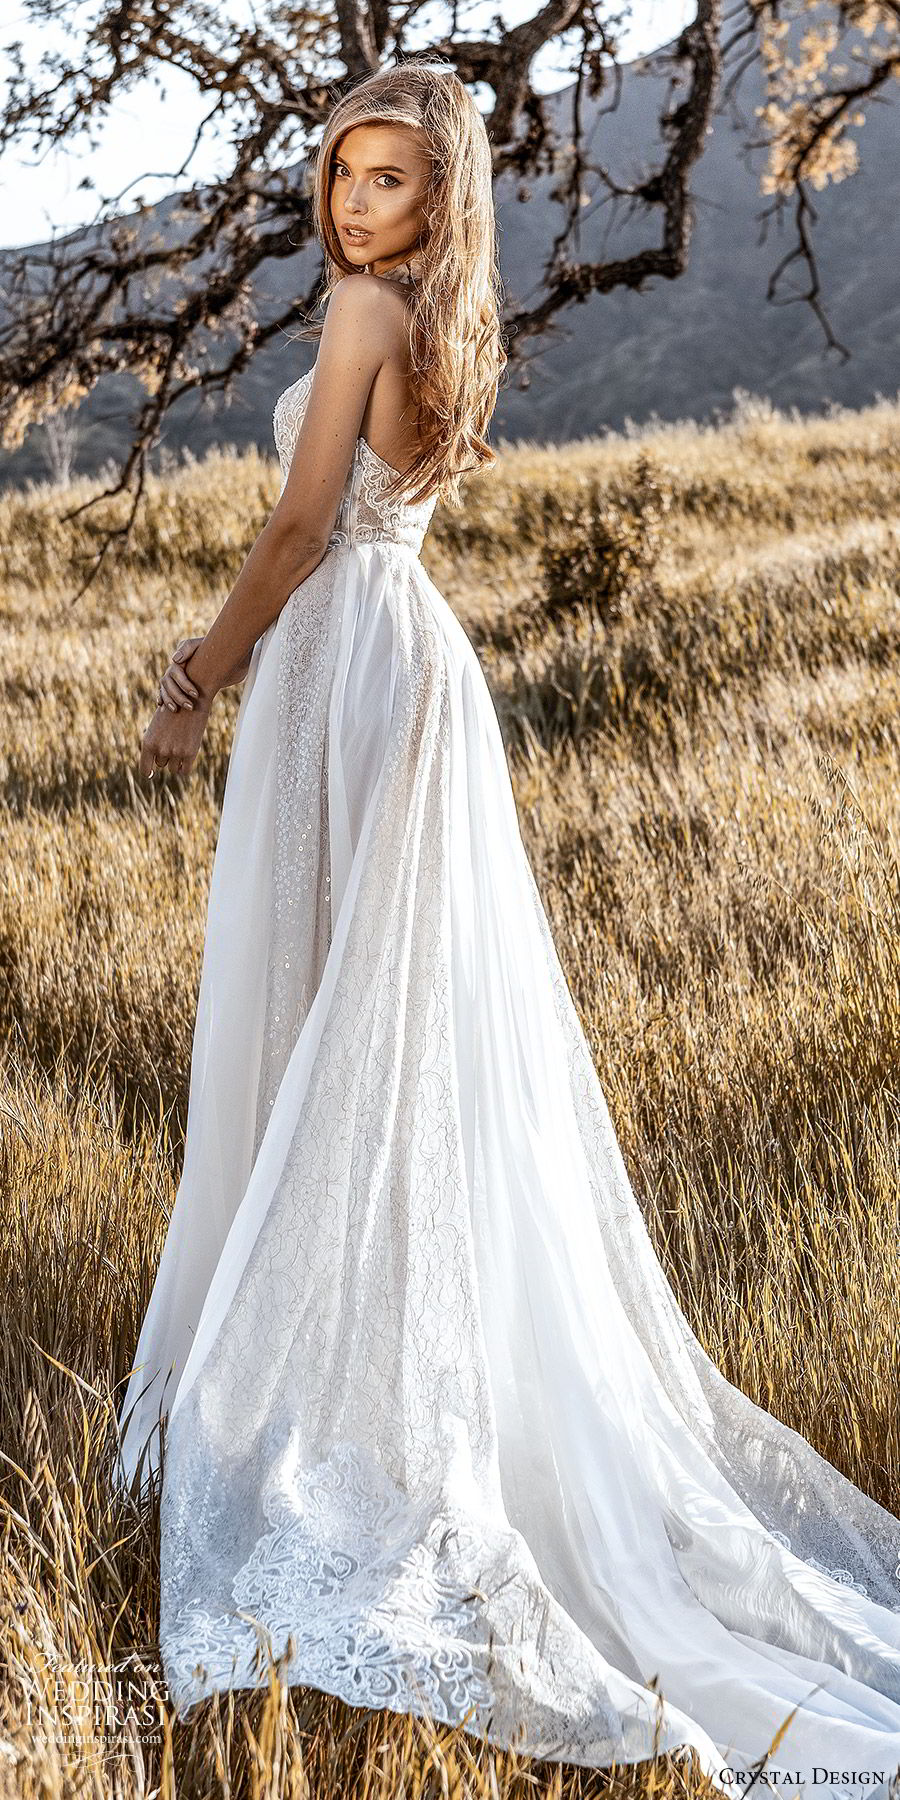 crystal design 2020 couture bridal sleeveless halter neckline fully embellished sheath wedding dress a line ball gown overskirt (1) romantic glitzy chapel train bv